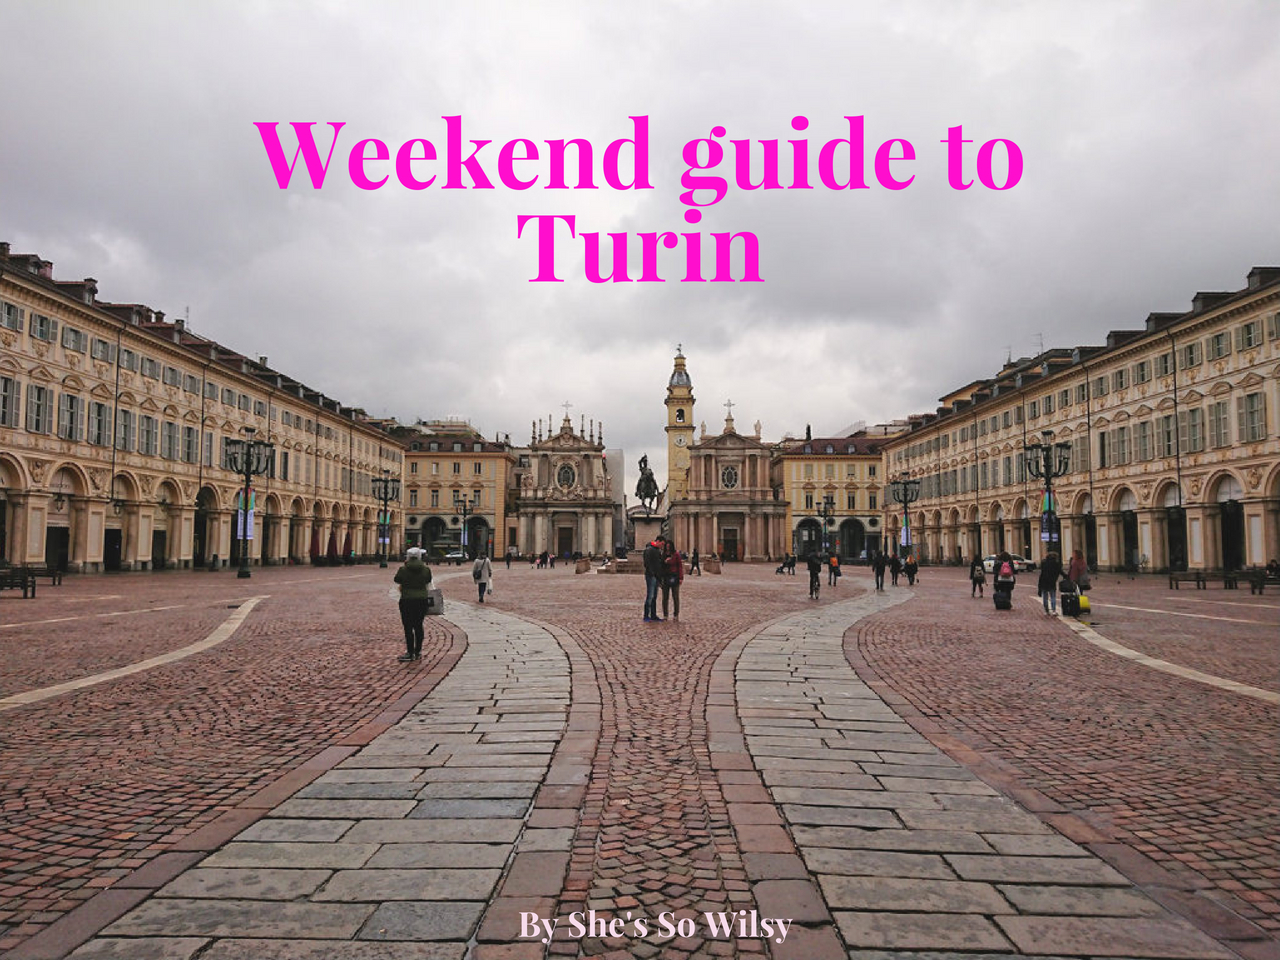 Weekend guide to Turin